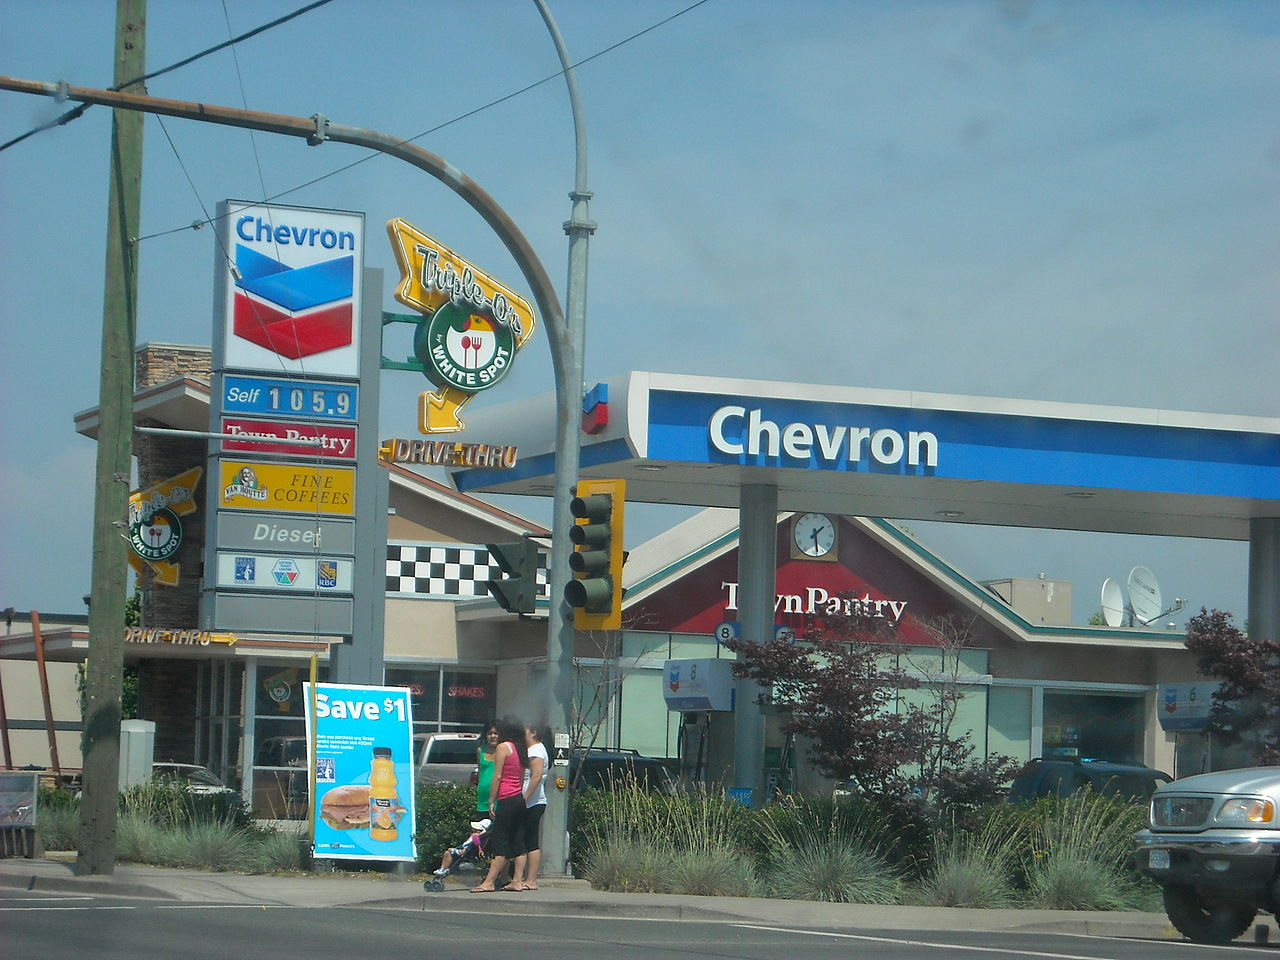 Chevron Shares Fall About 3% After Q1 Revenue Disappoints